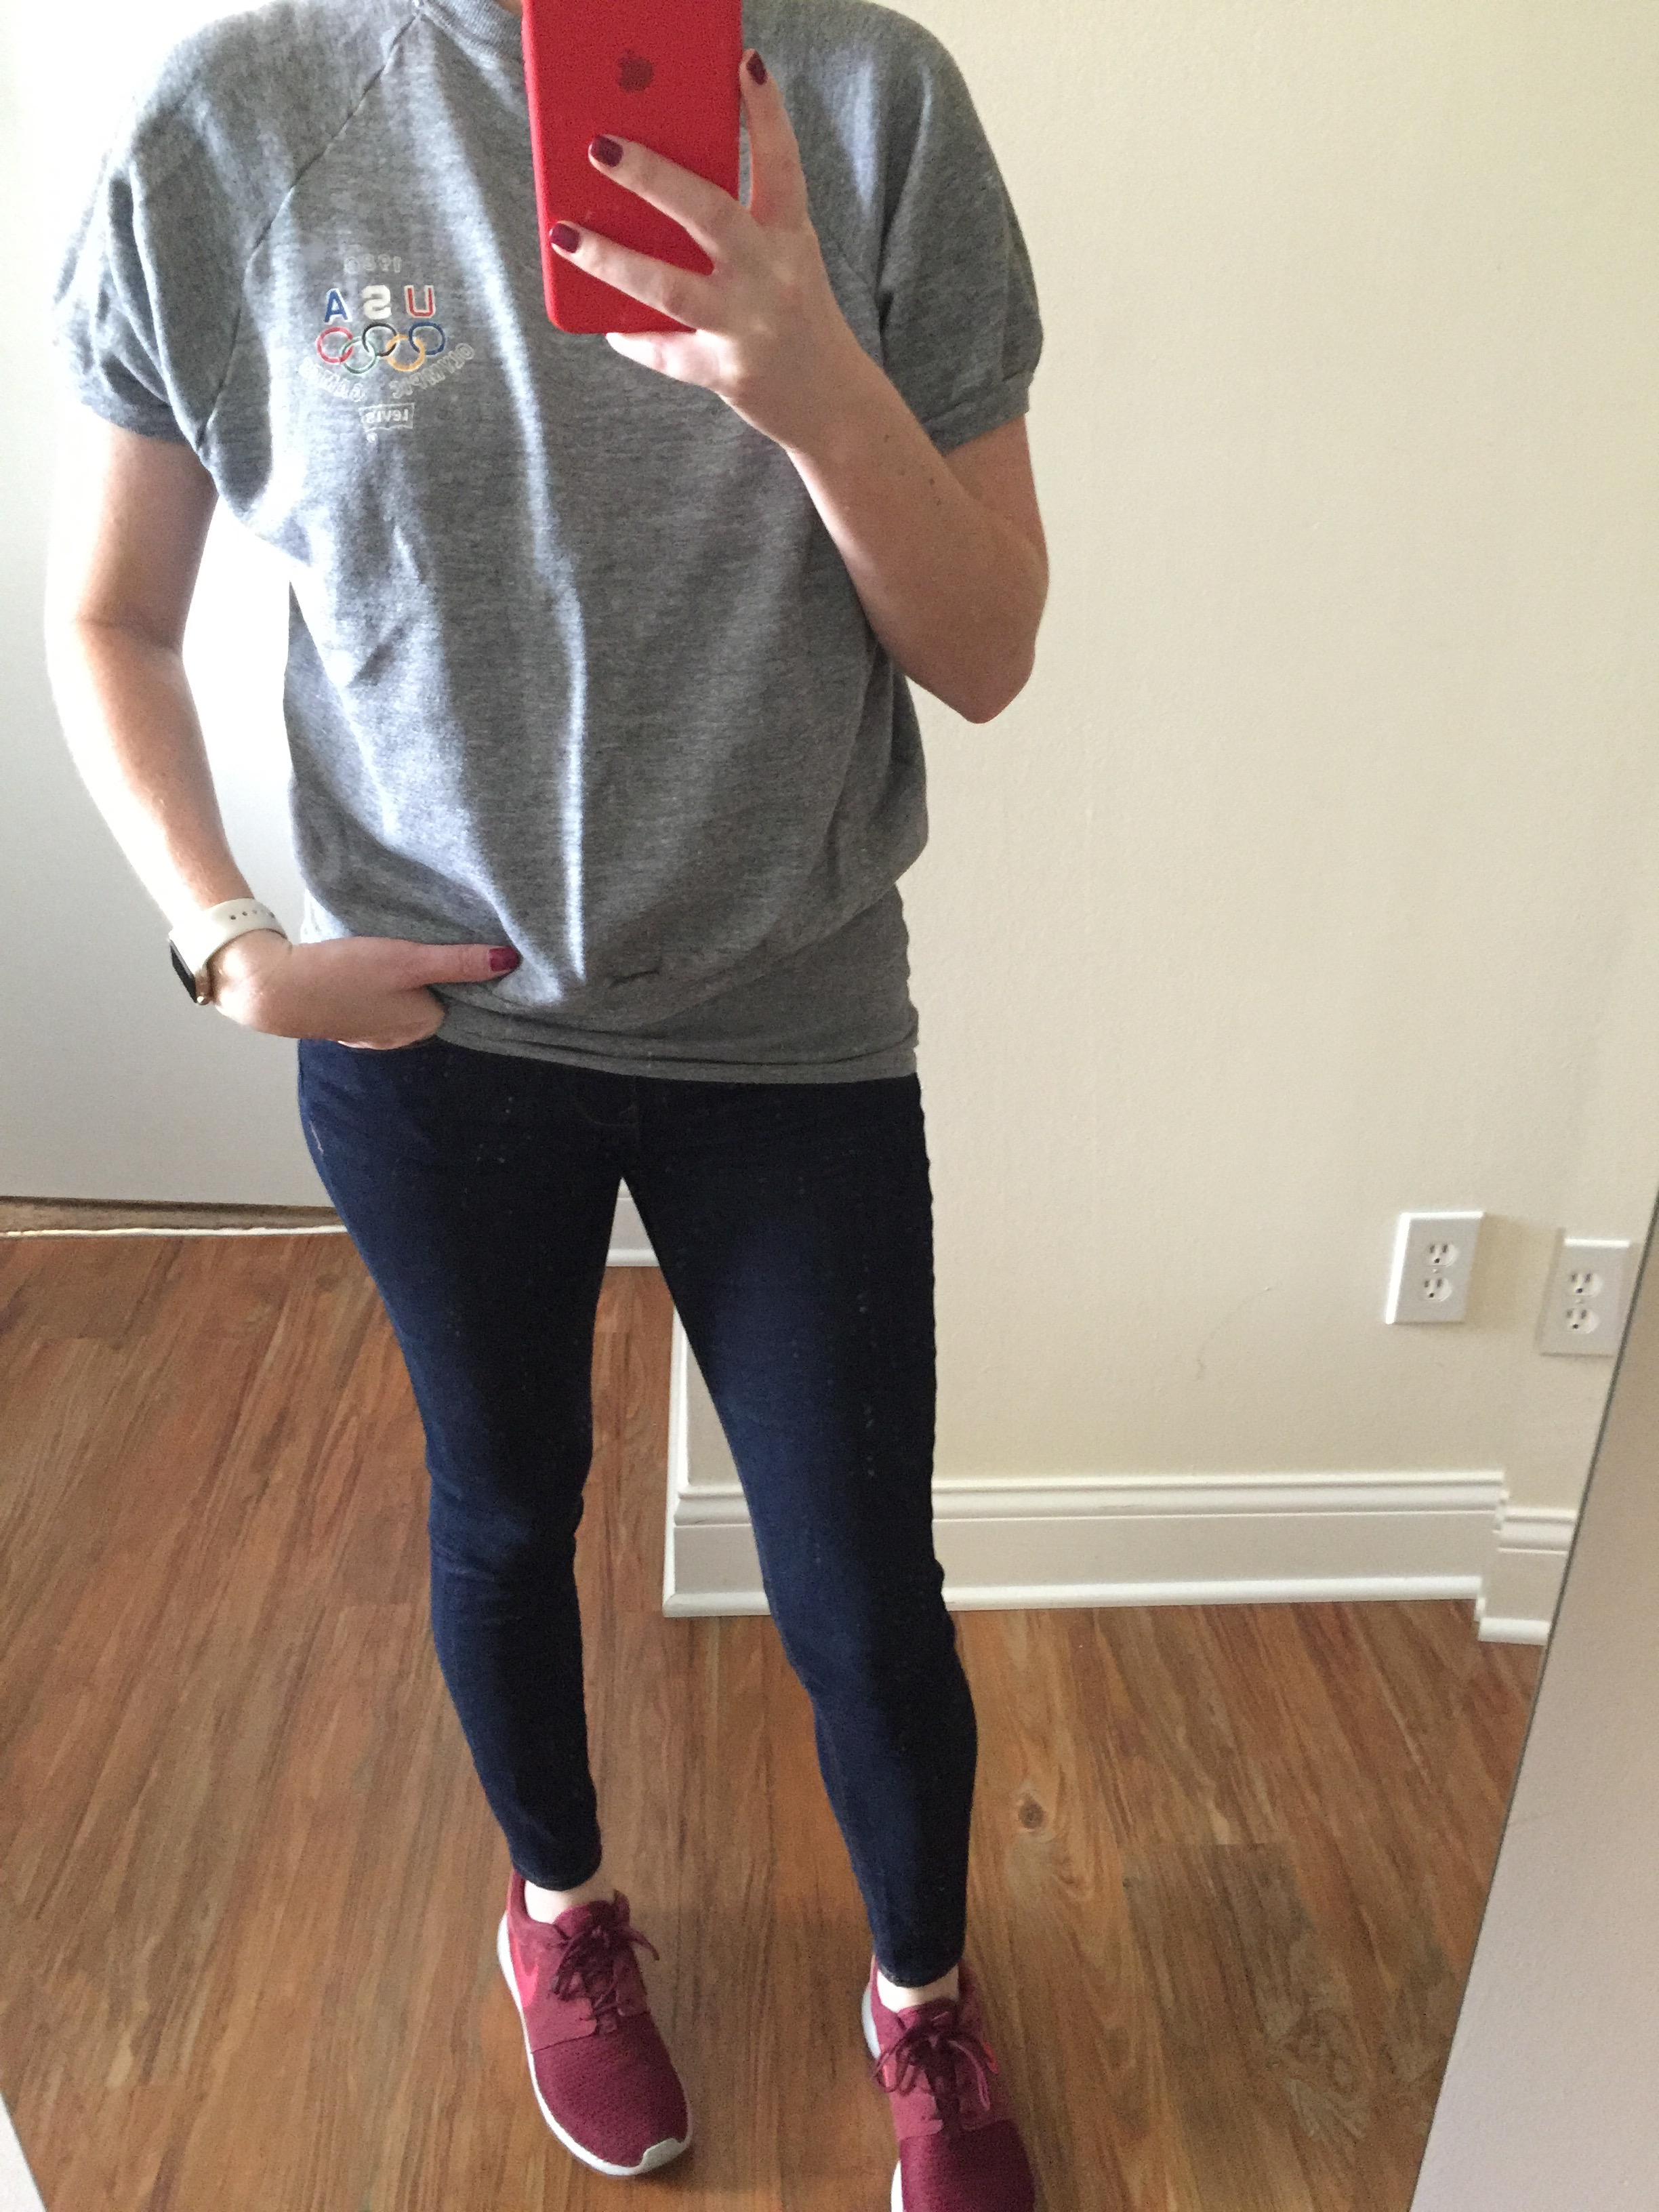 Sweatshirt: Goodwill, Jeans:Express, Solid Dark Mid Rise Jean Legging ,Shoes:Nike, Roshe One